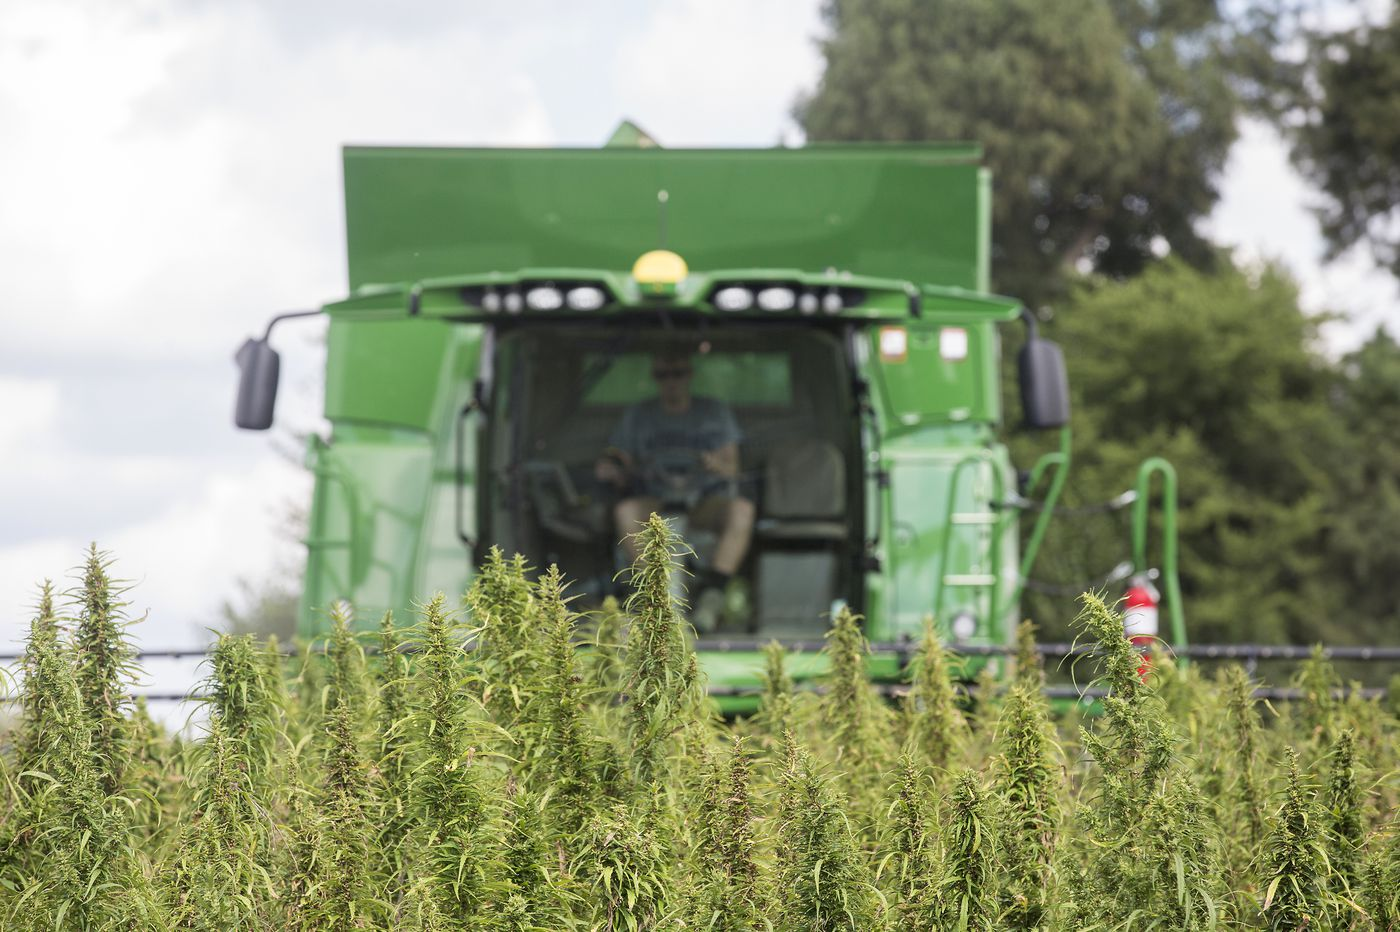 In a surprise move, Pennsylvania is throwing the door wide open for industrial hemp production